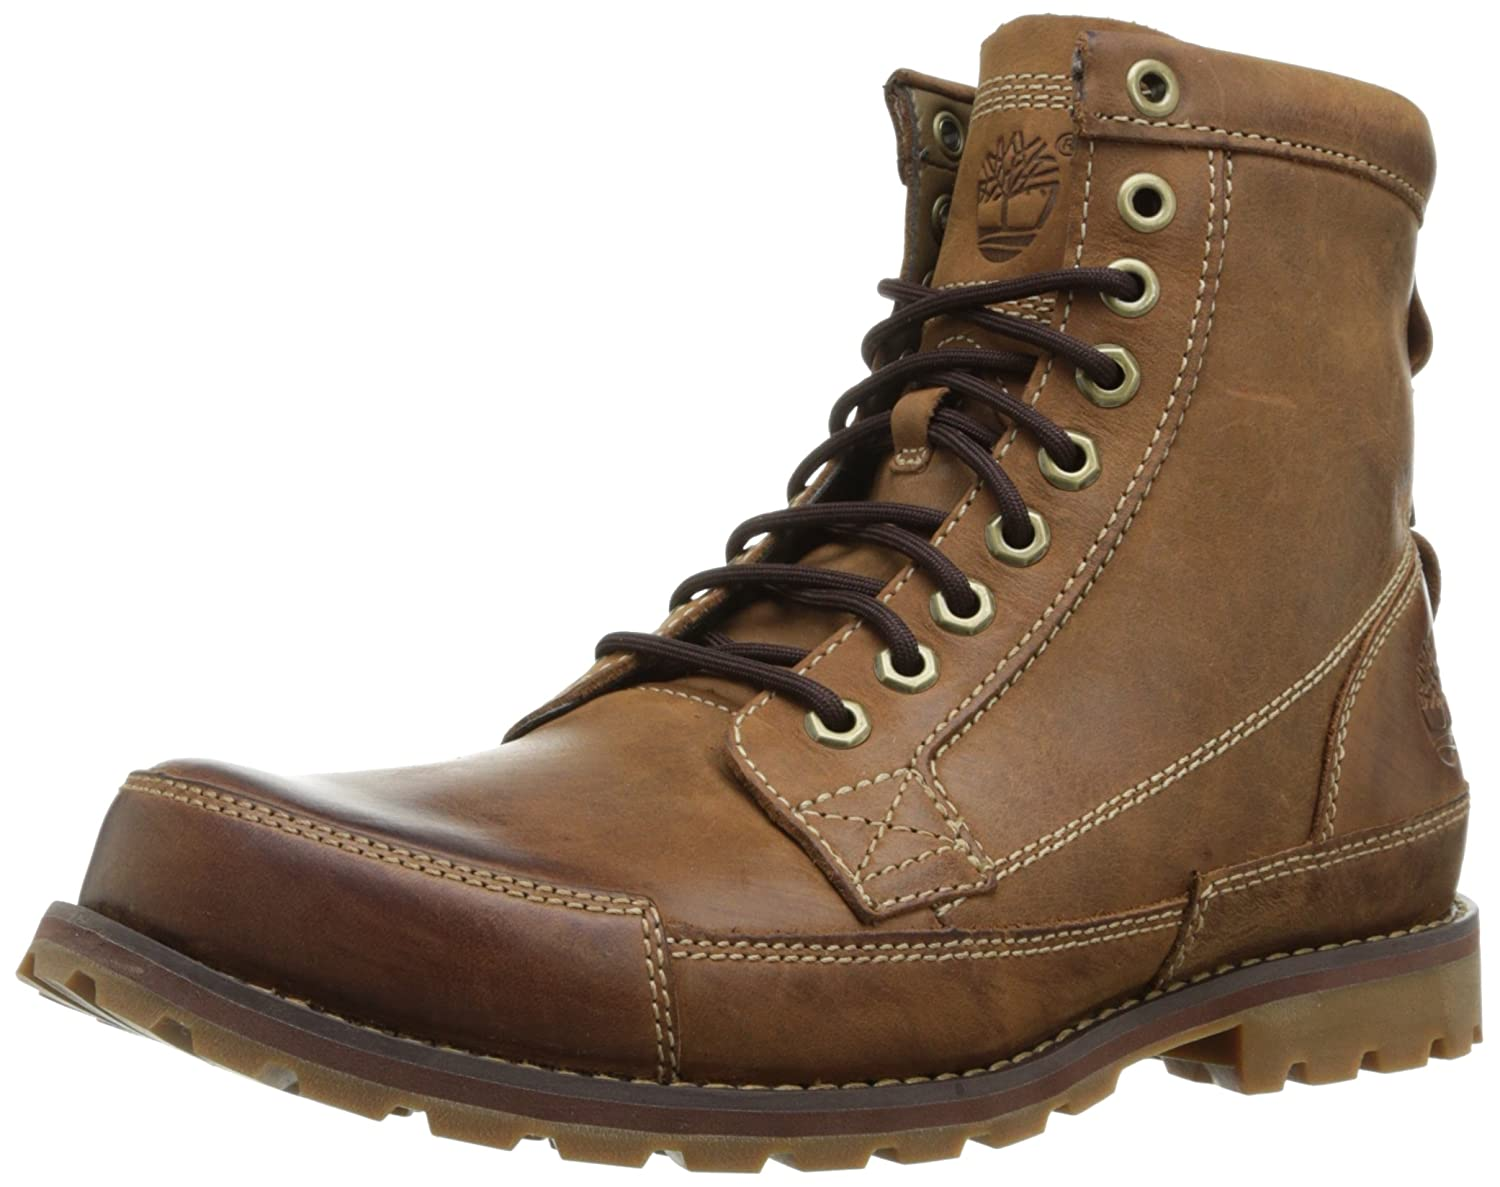 cf11af434c1 Timberland Men's Earthkeeper Original 6